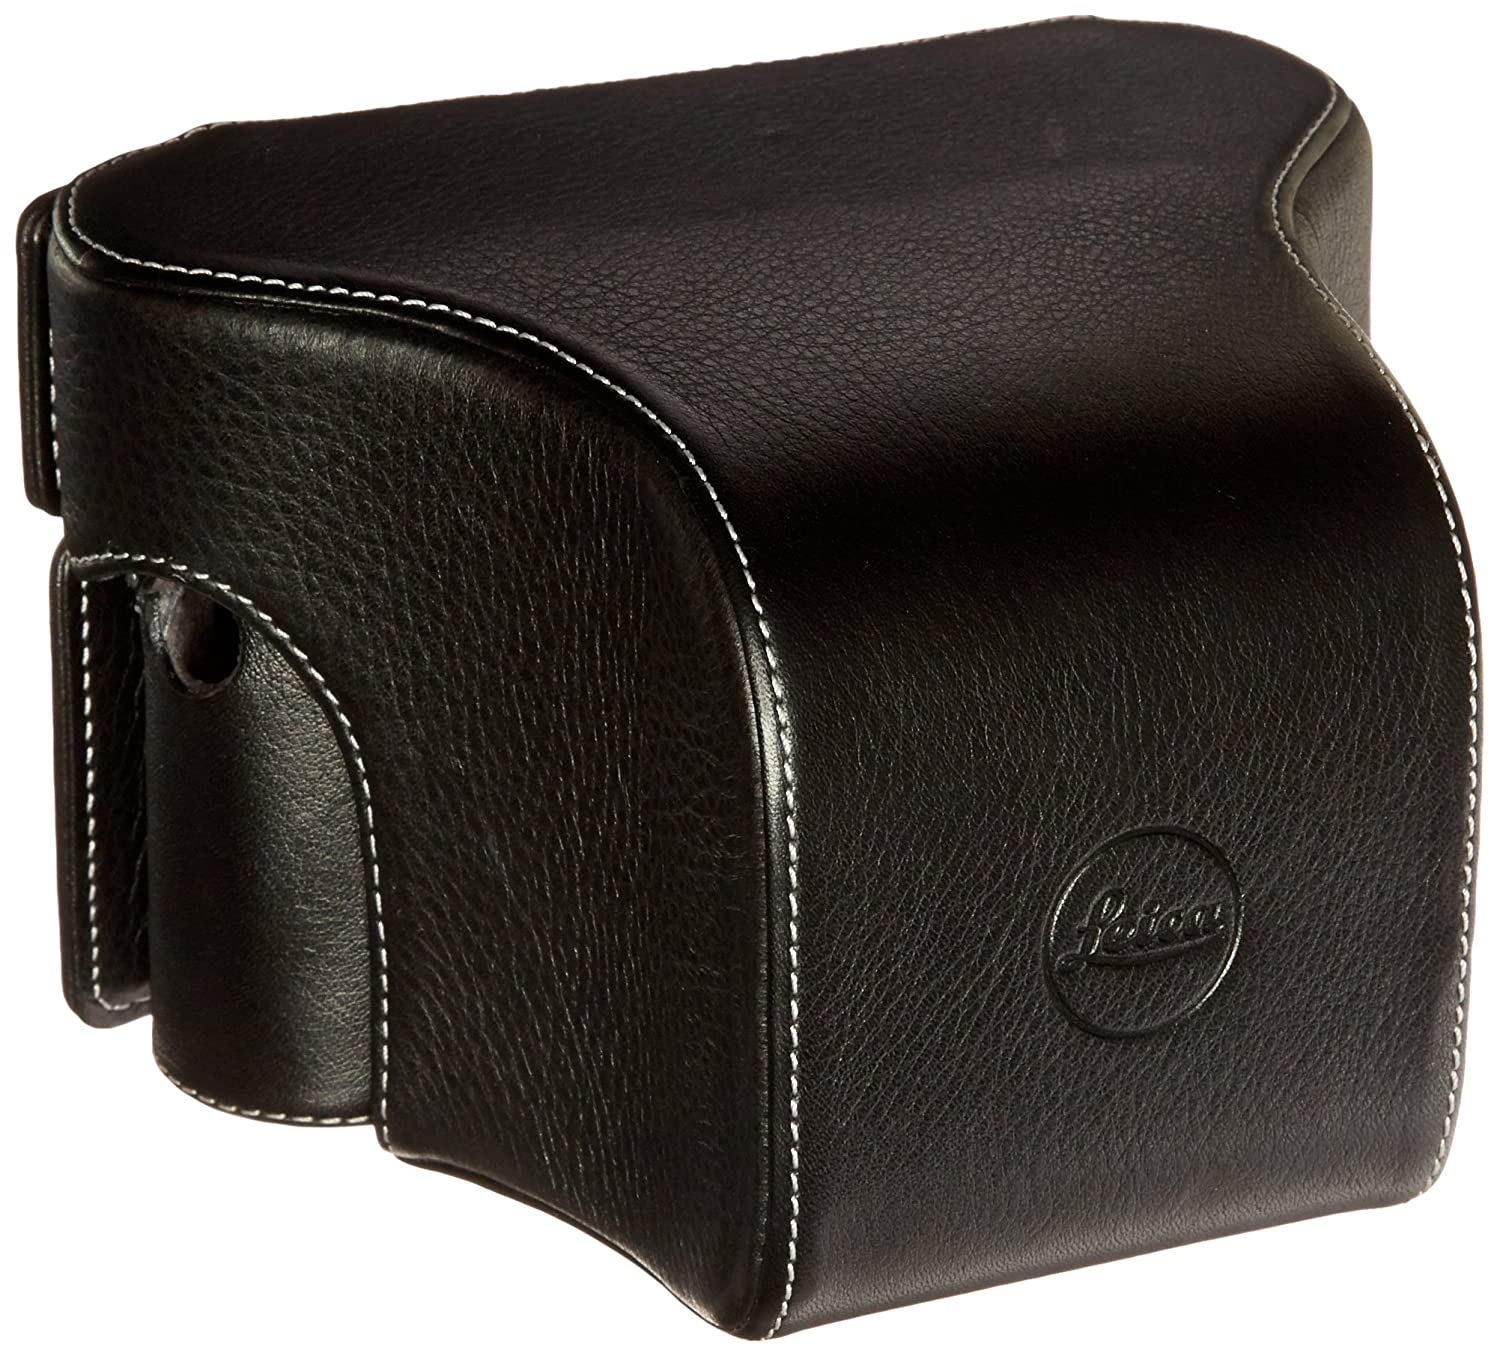 Ever-Ready Case for Leica M or M-P Camera with Short Front Section (Black)   B00N63W6HS